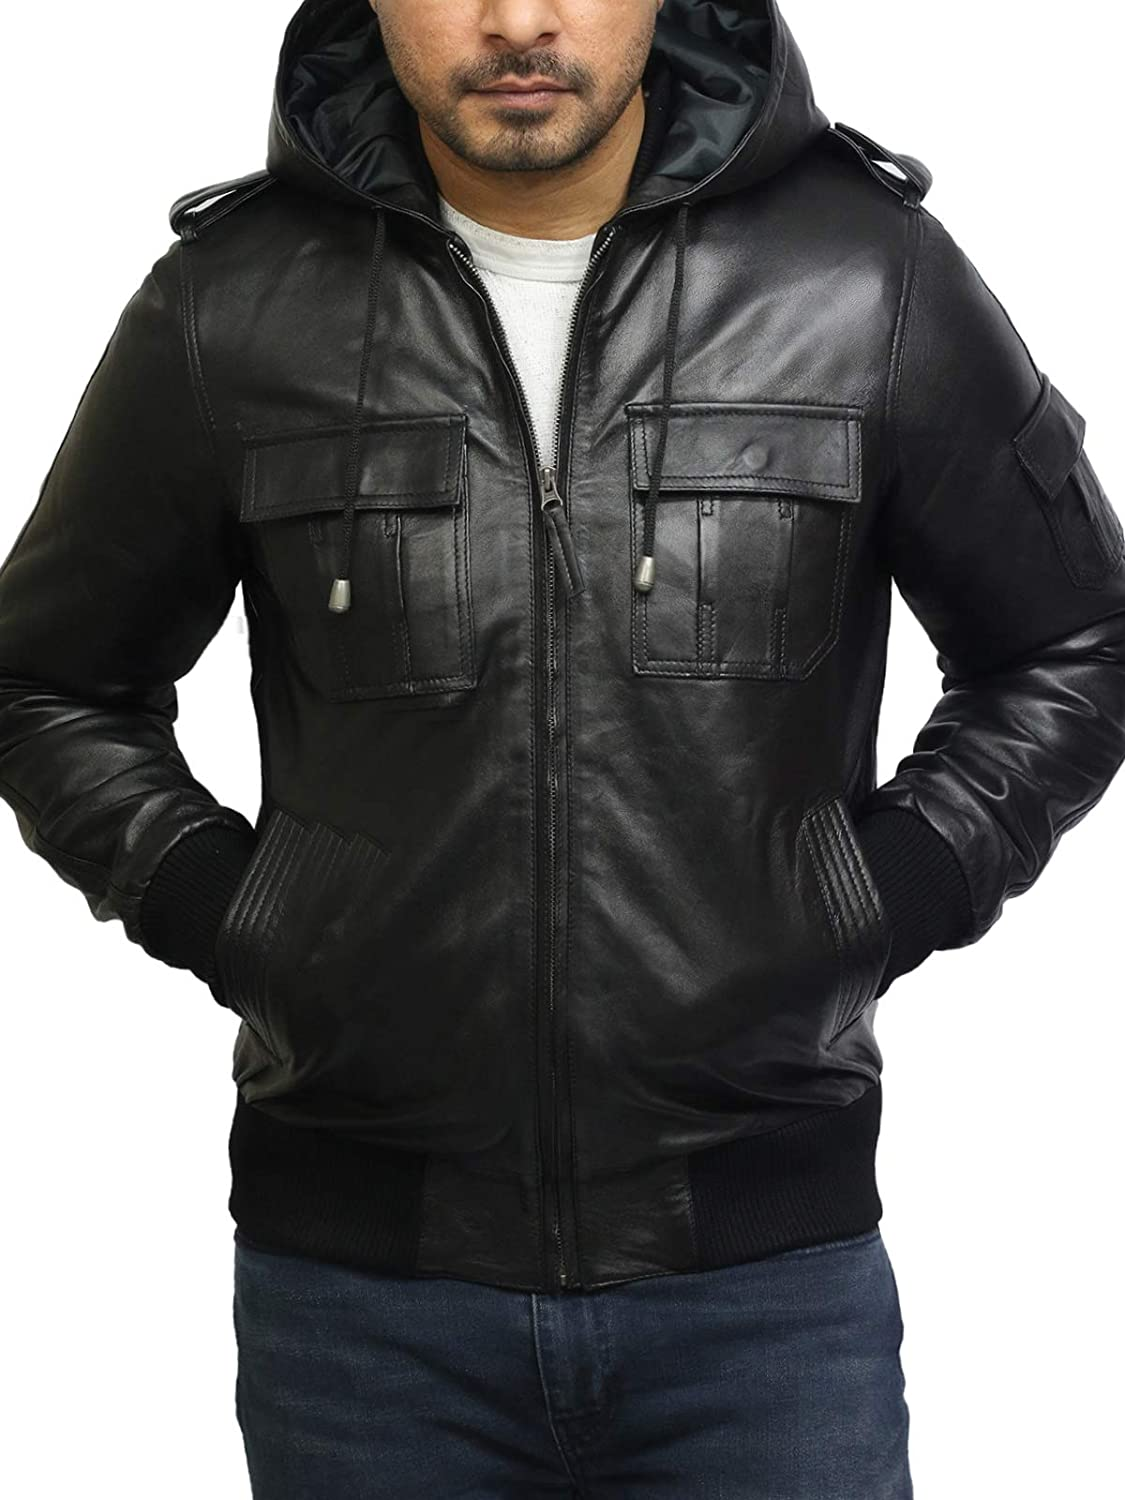 Black Leather Jacket Mens Cafe Racer Real Lambskin Leather Distressed Motorcycle Jacket